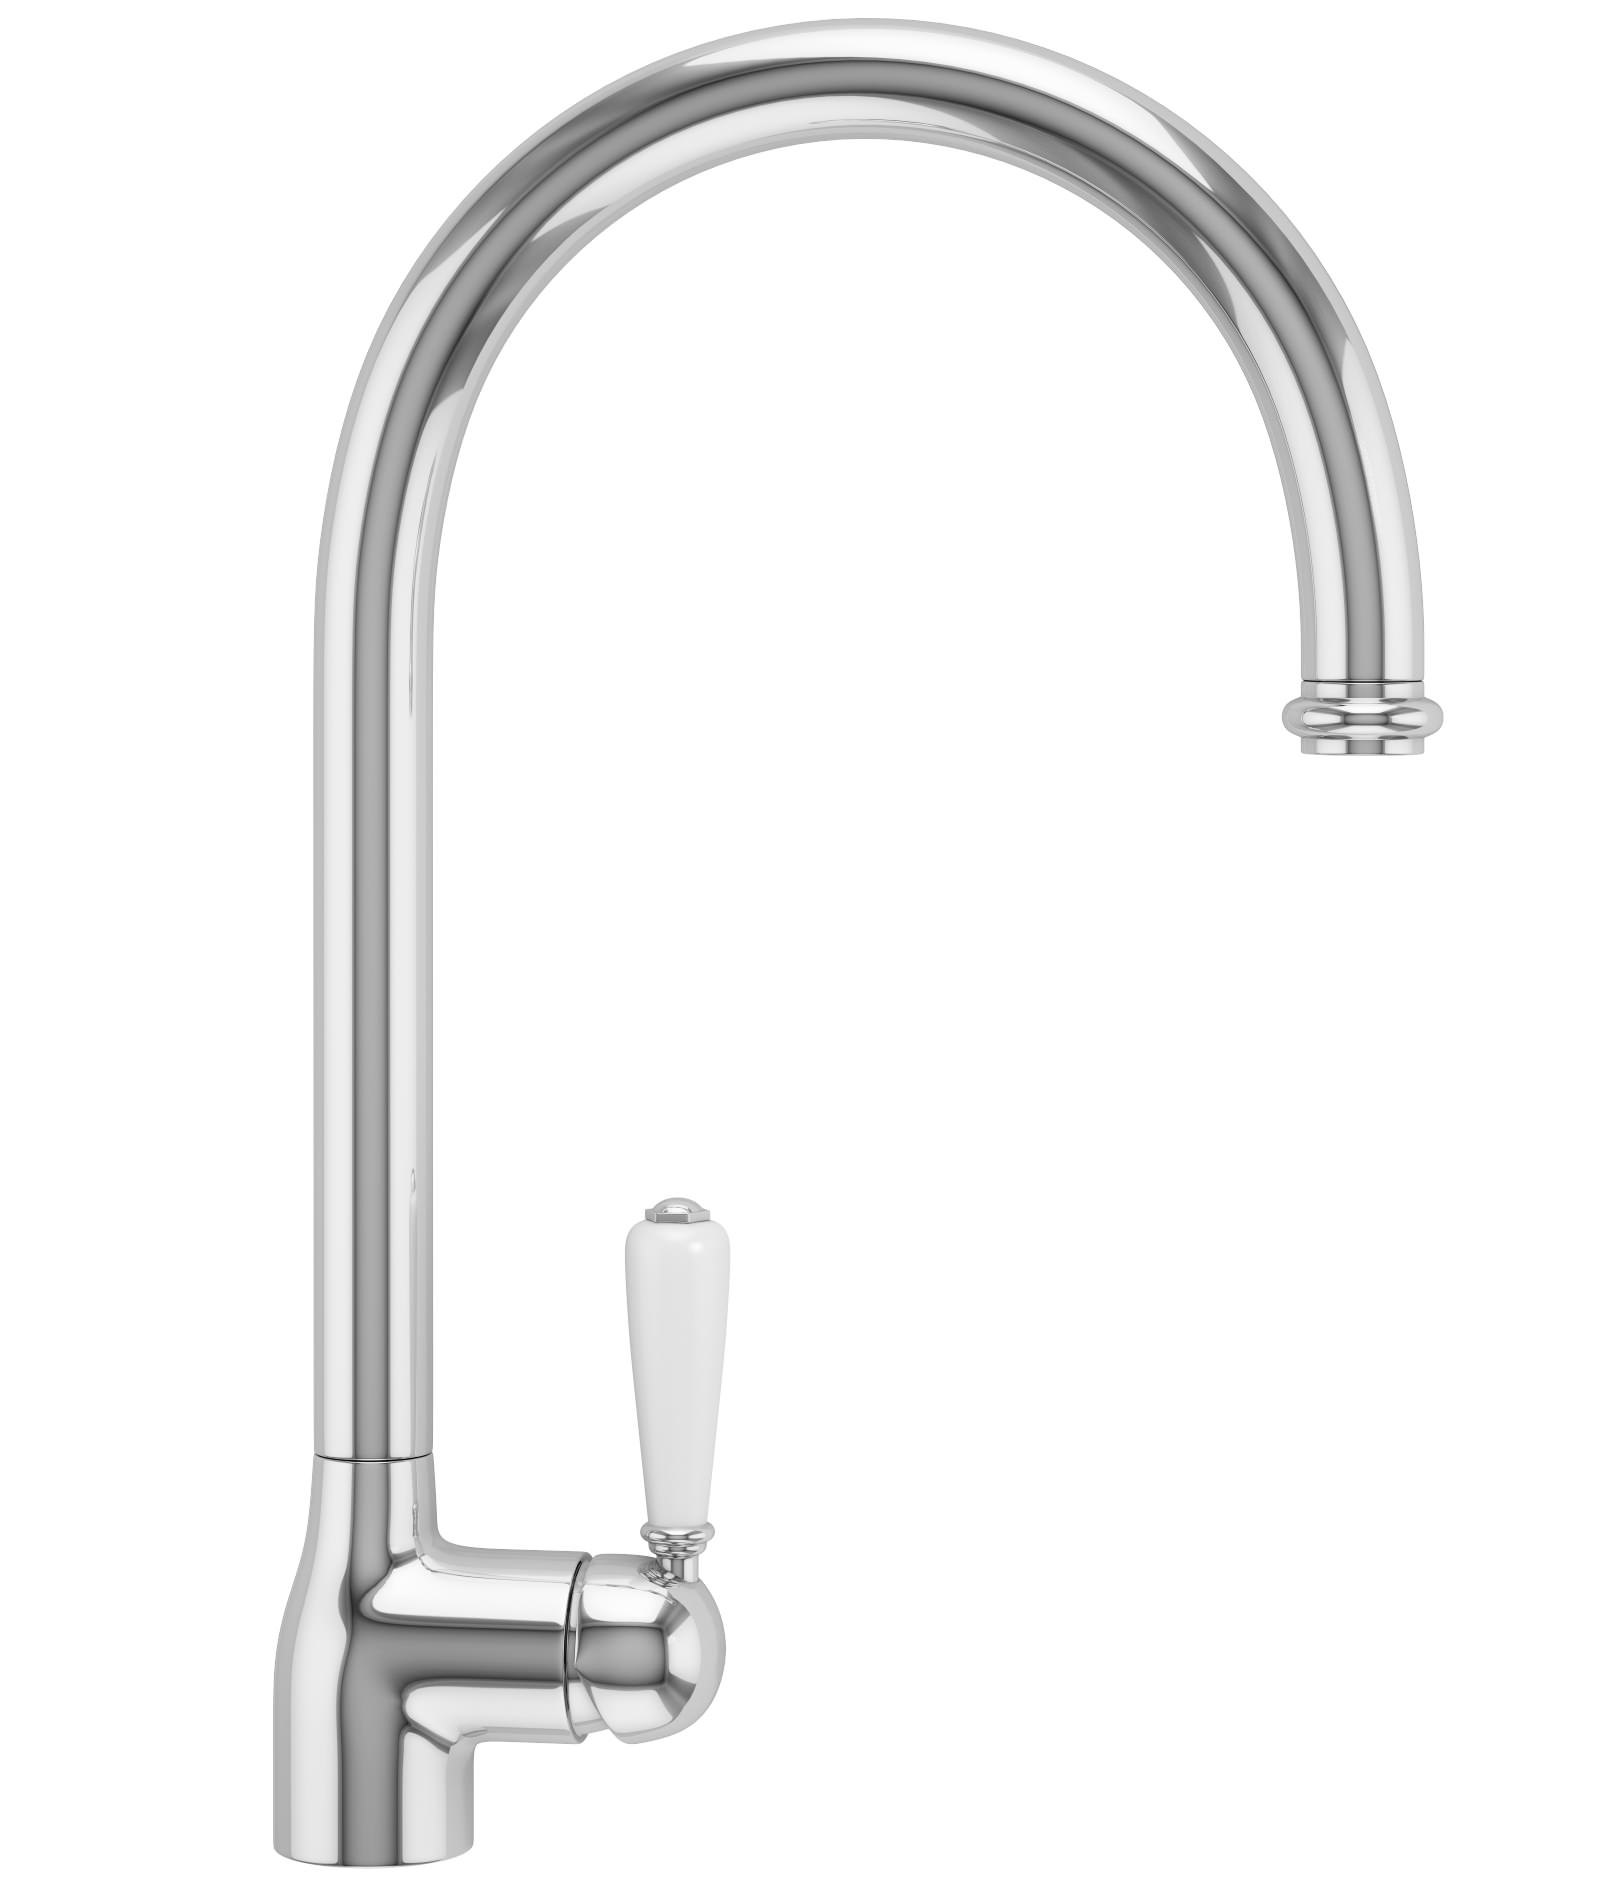 franke belfast pull out nozzle kitchen sink mixer tap chrome - Kitchen Sink Nozzle